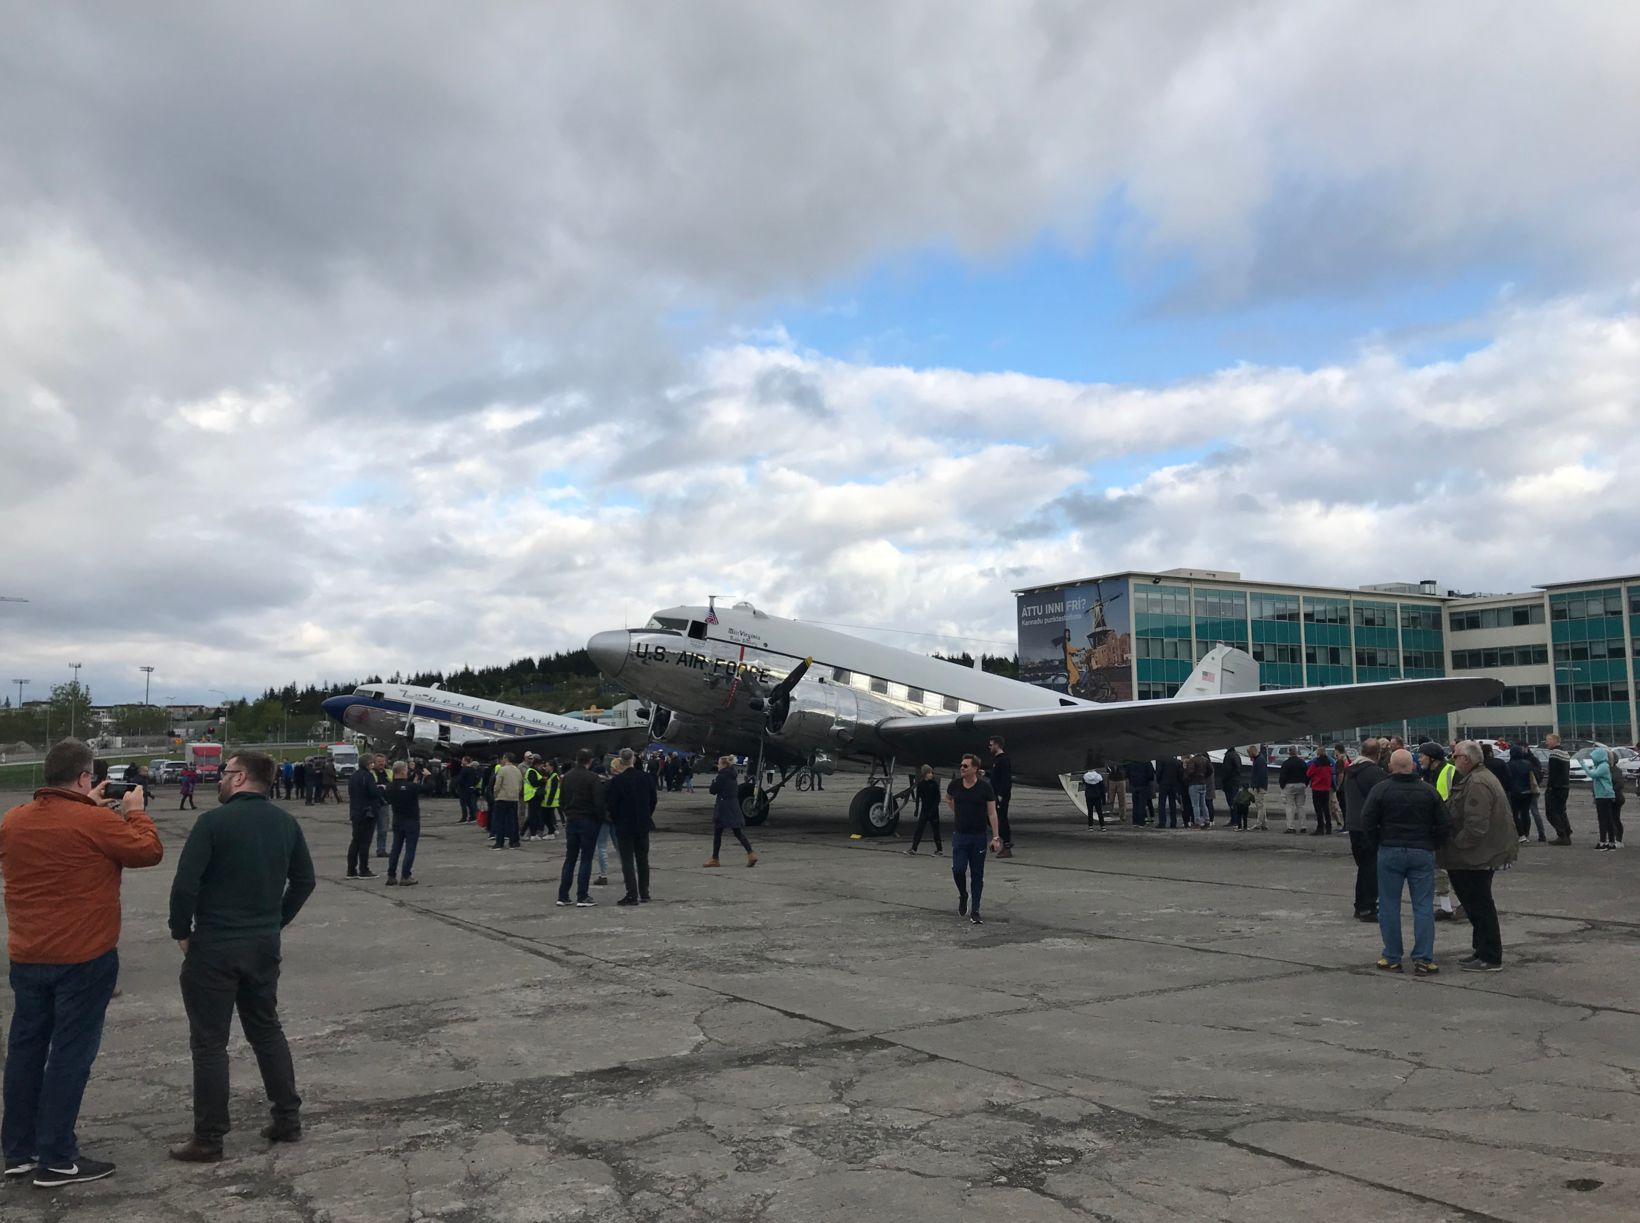 Two of the DC-3/C-47 aircraft at Reykjavík Airport.